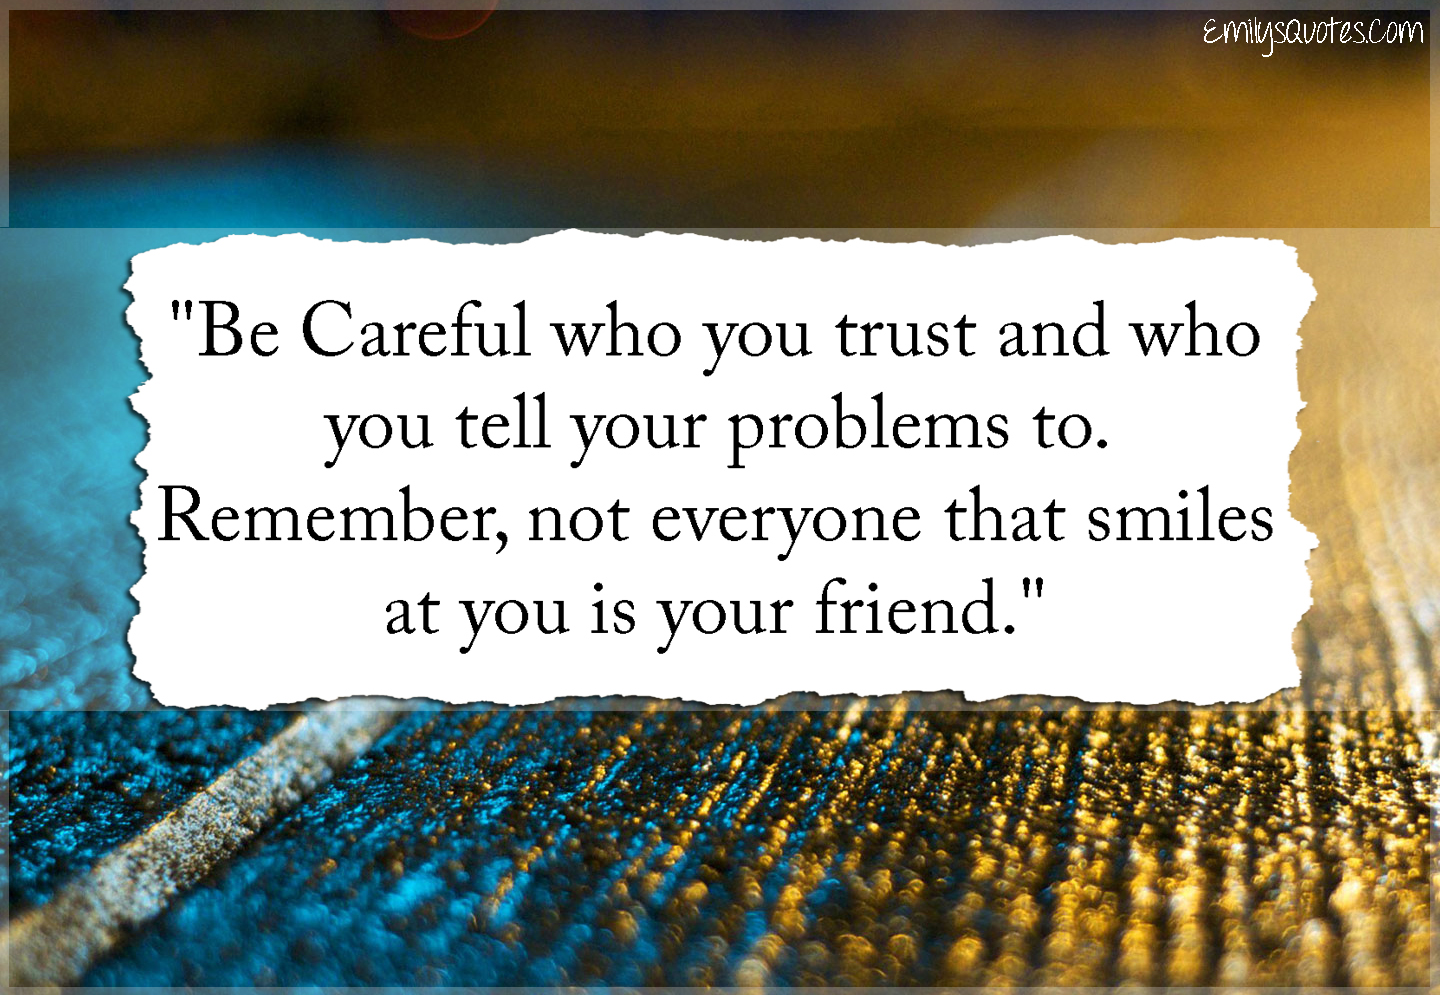 Inspirational Quotes About Friendship Be Careful Who You Trust And Who You Tell Your Problems To